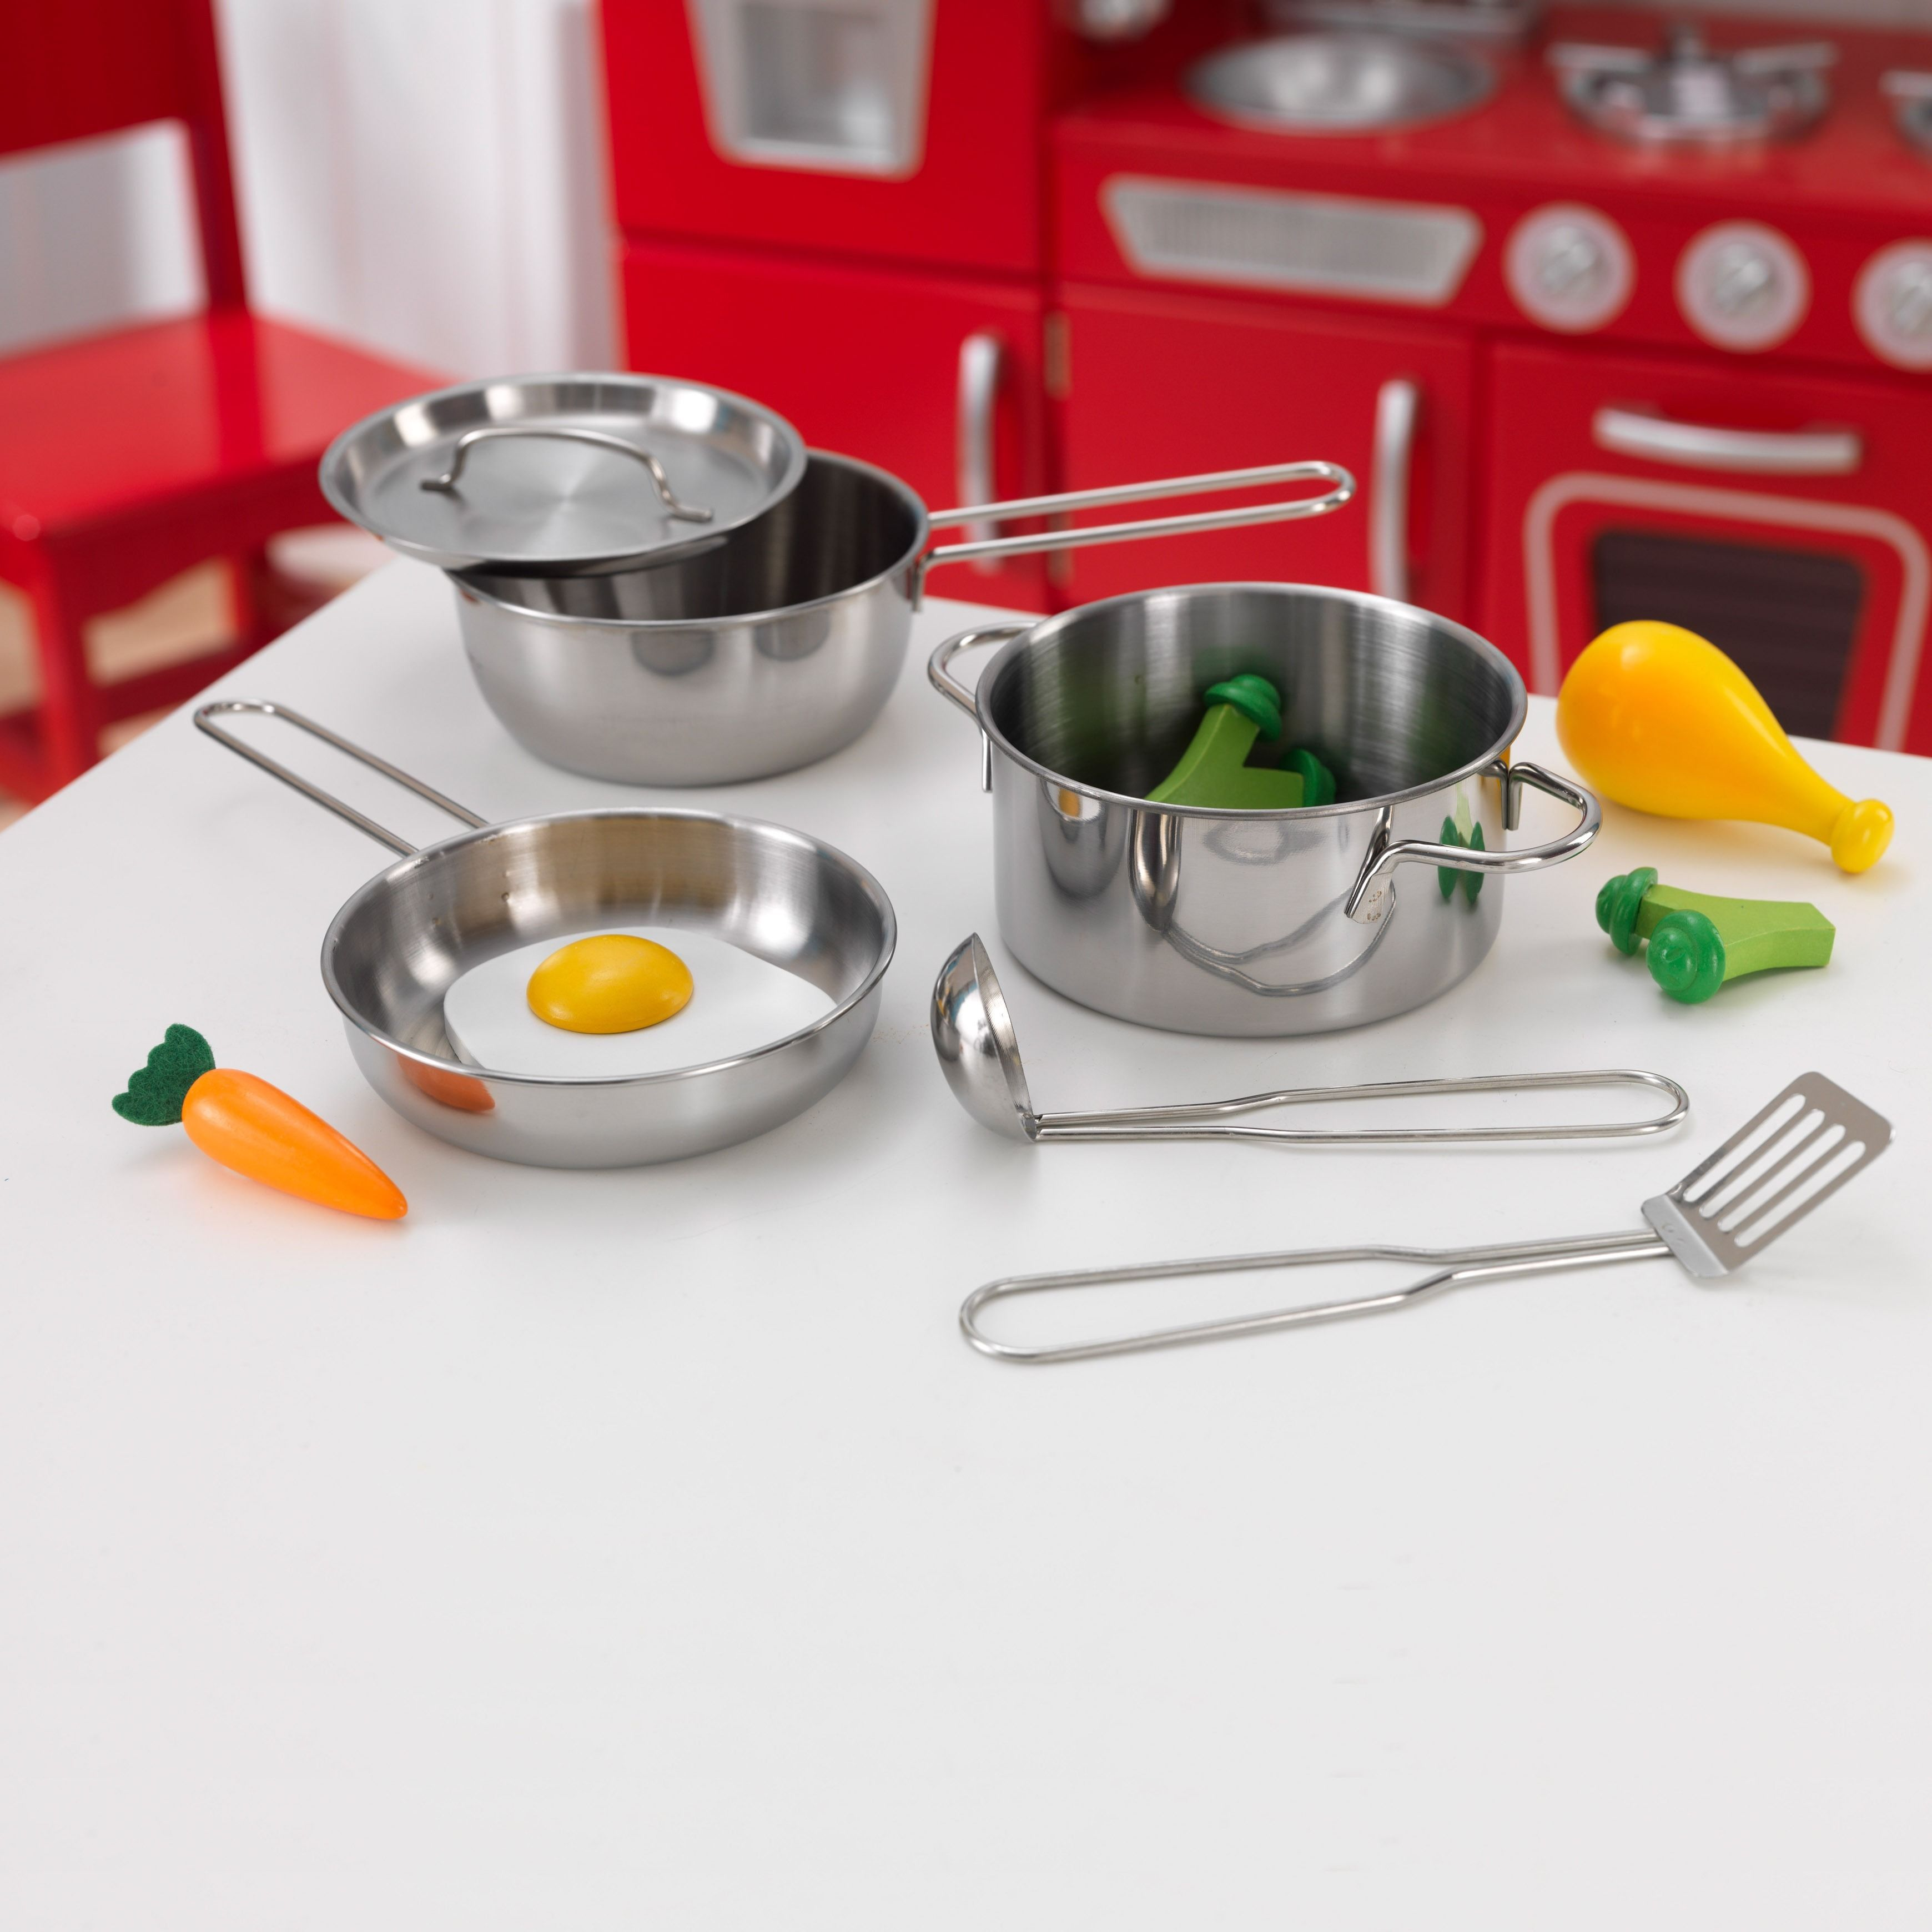 Kidkraft Metal Grey Pots Pans And Play Food Set For Little Chefs